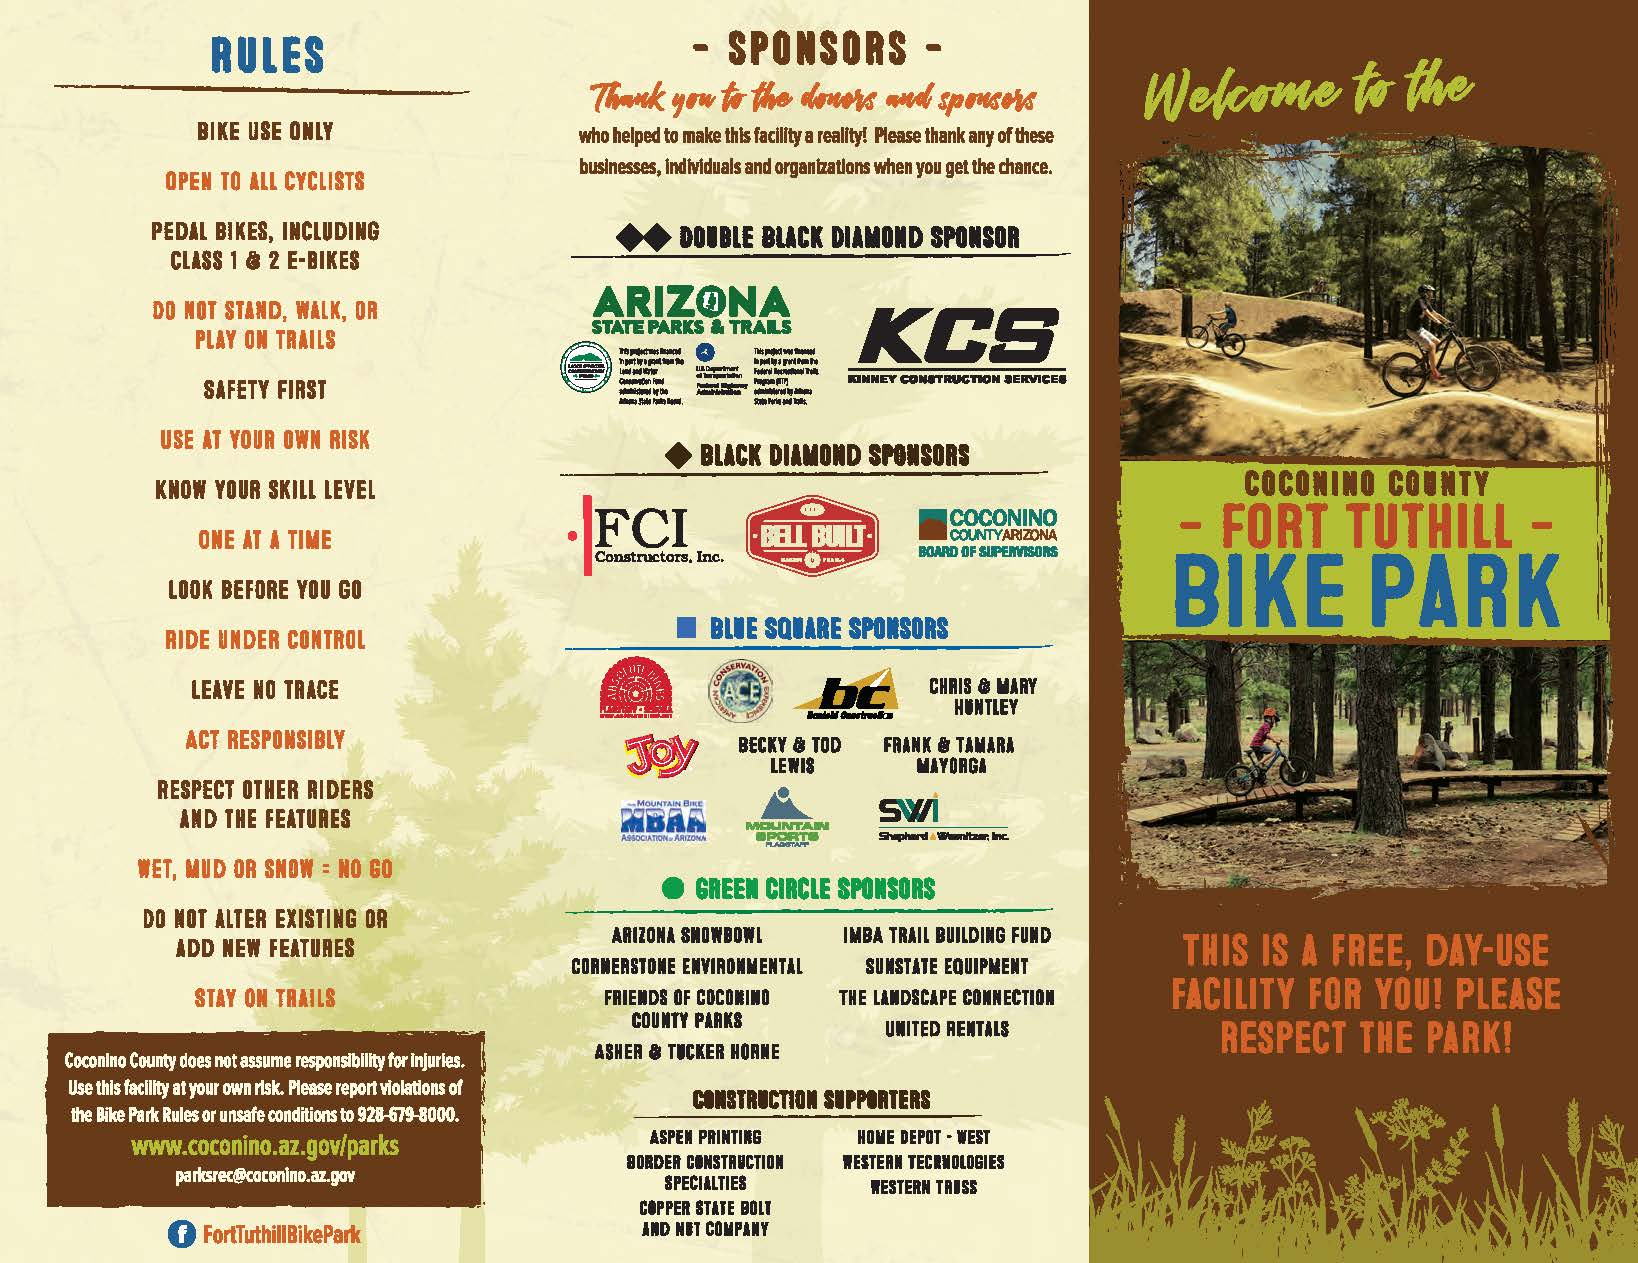 Ft-Tuthill-Bike-Park-Brochure_reduced_Page_1